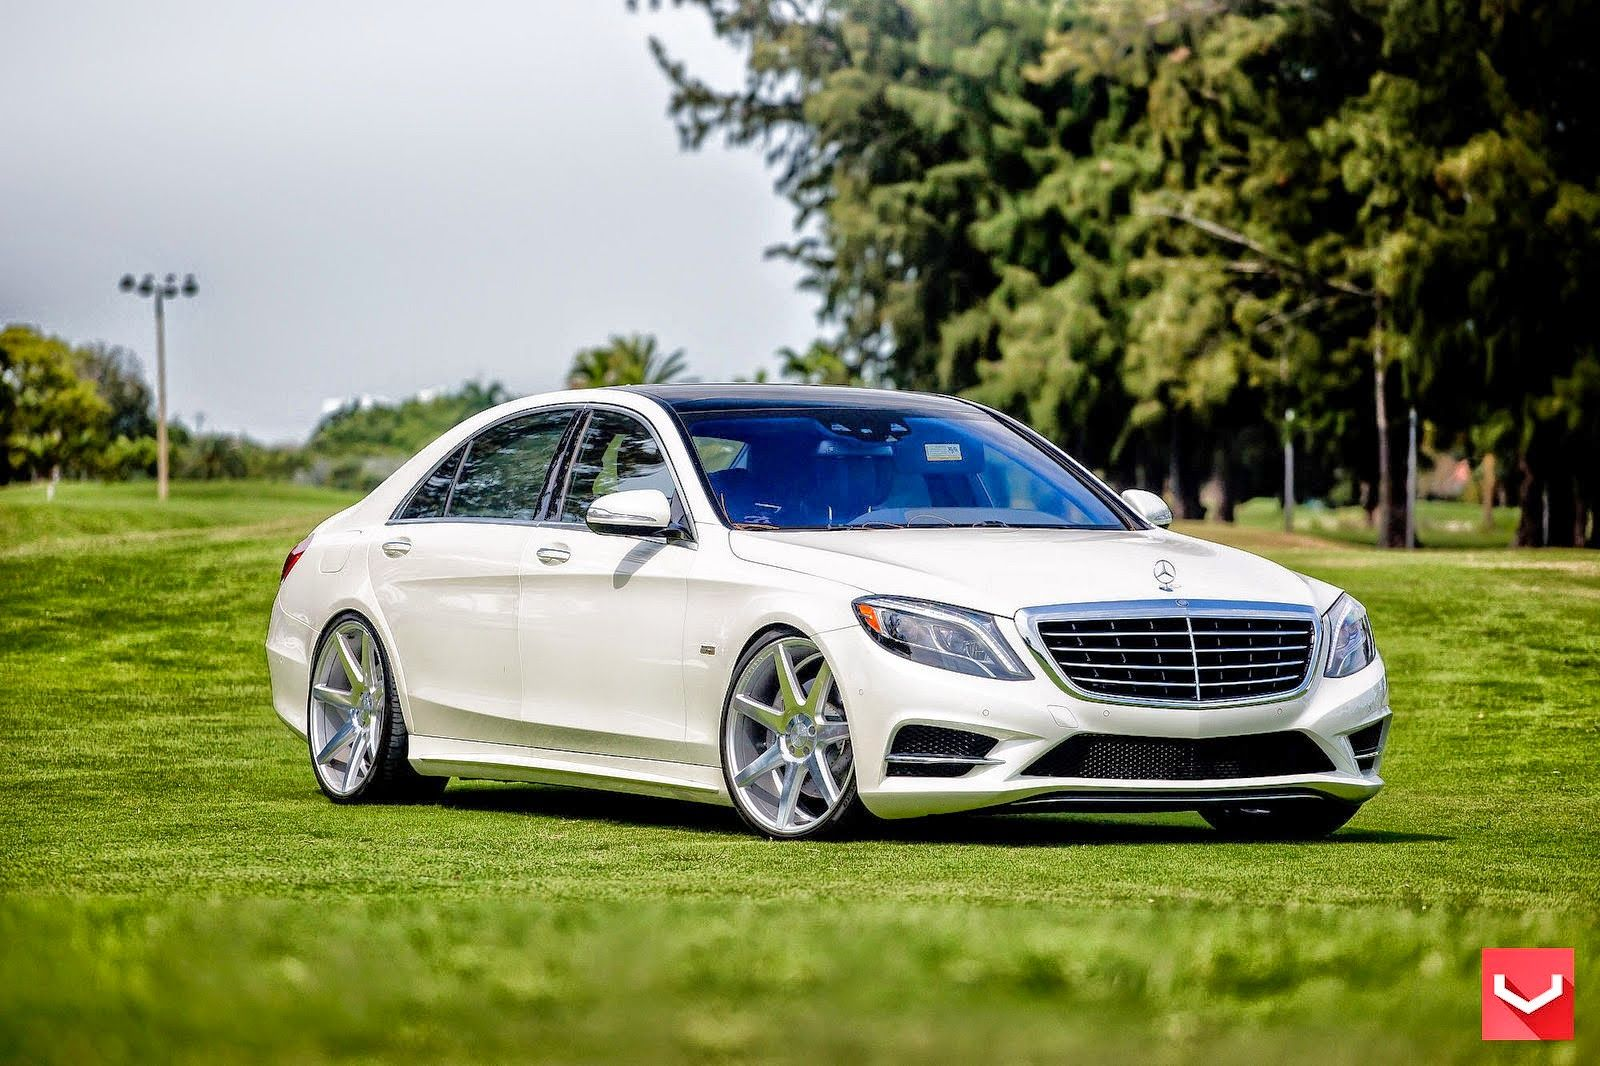 Mercedes-Benz W222 S550 on Vossen CV7 Wheels | BENZTUNING | Performance and Style